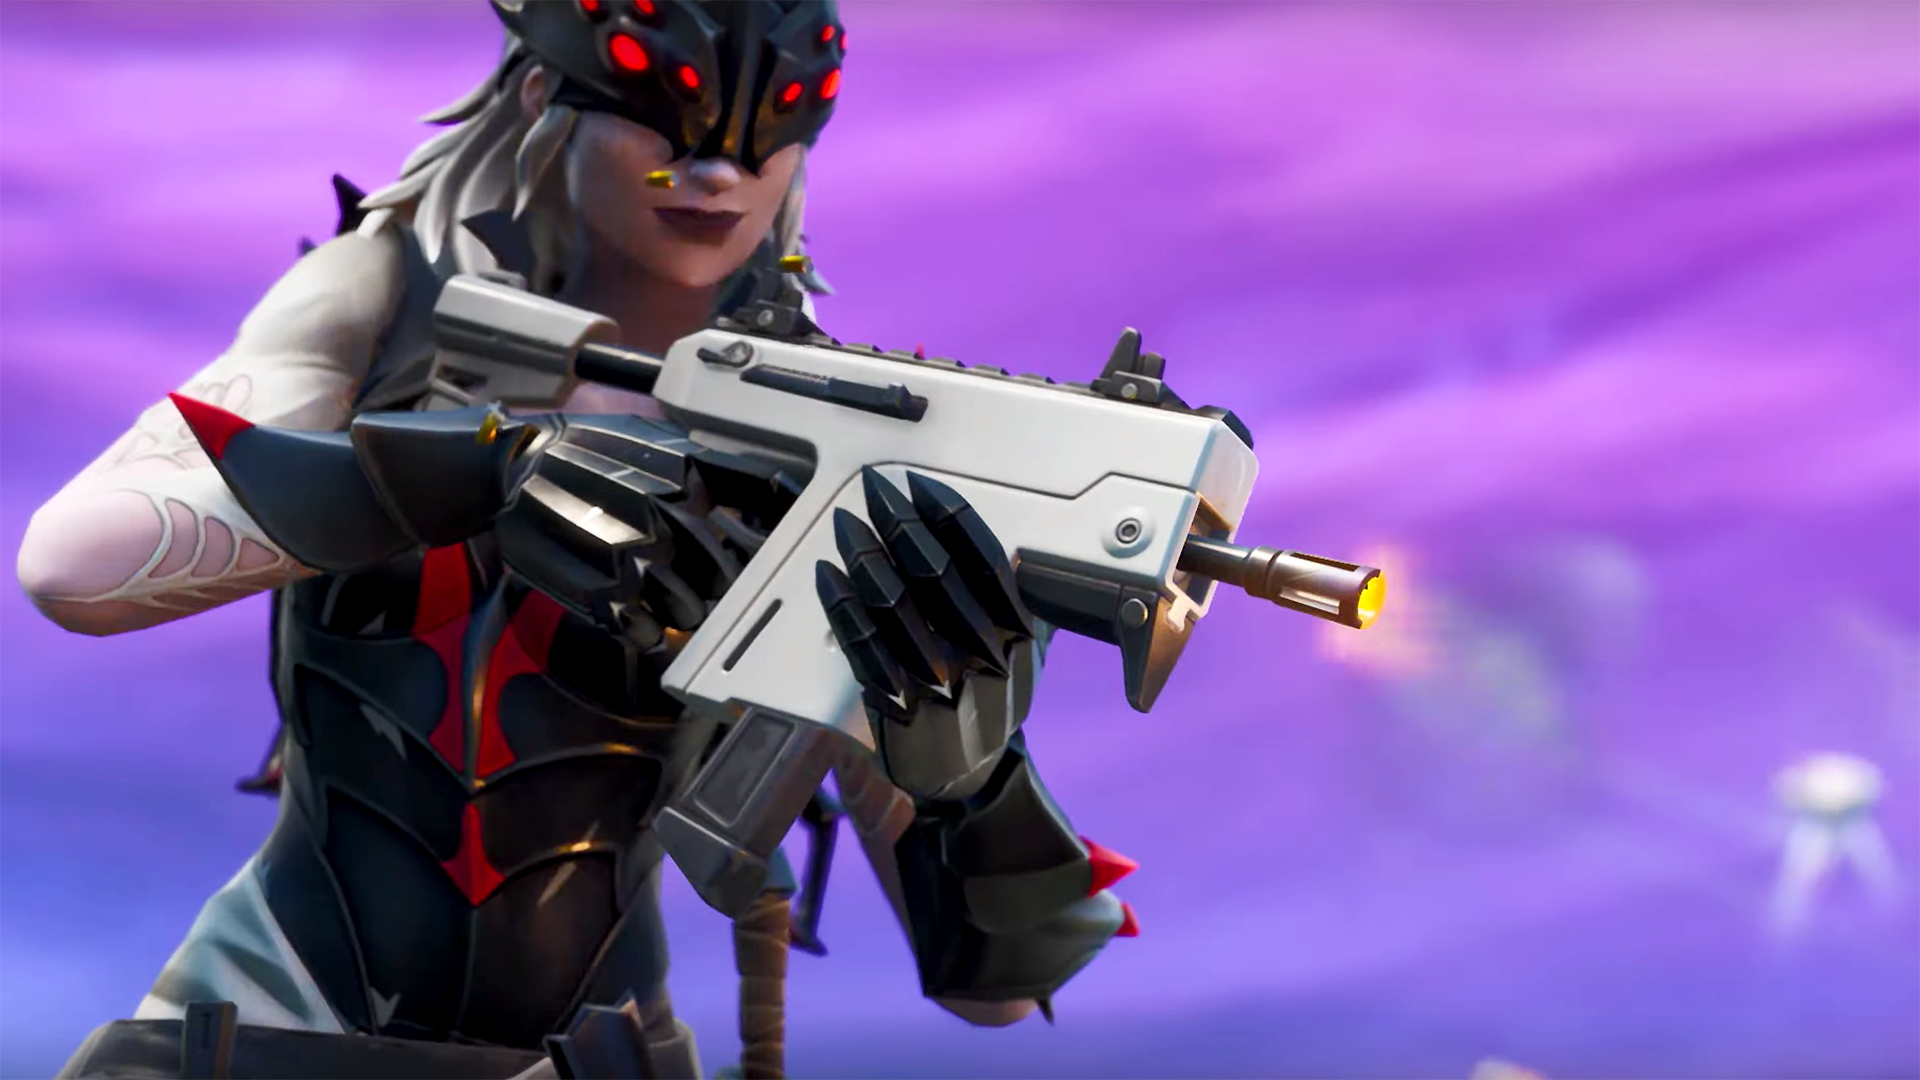 Fortnite introduces Burst SMG while vaulting Suppressed SMG.